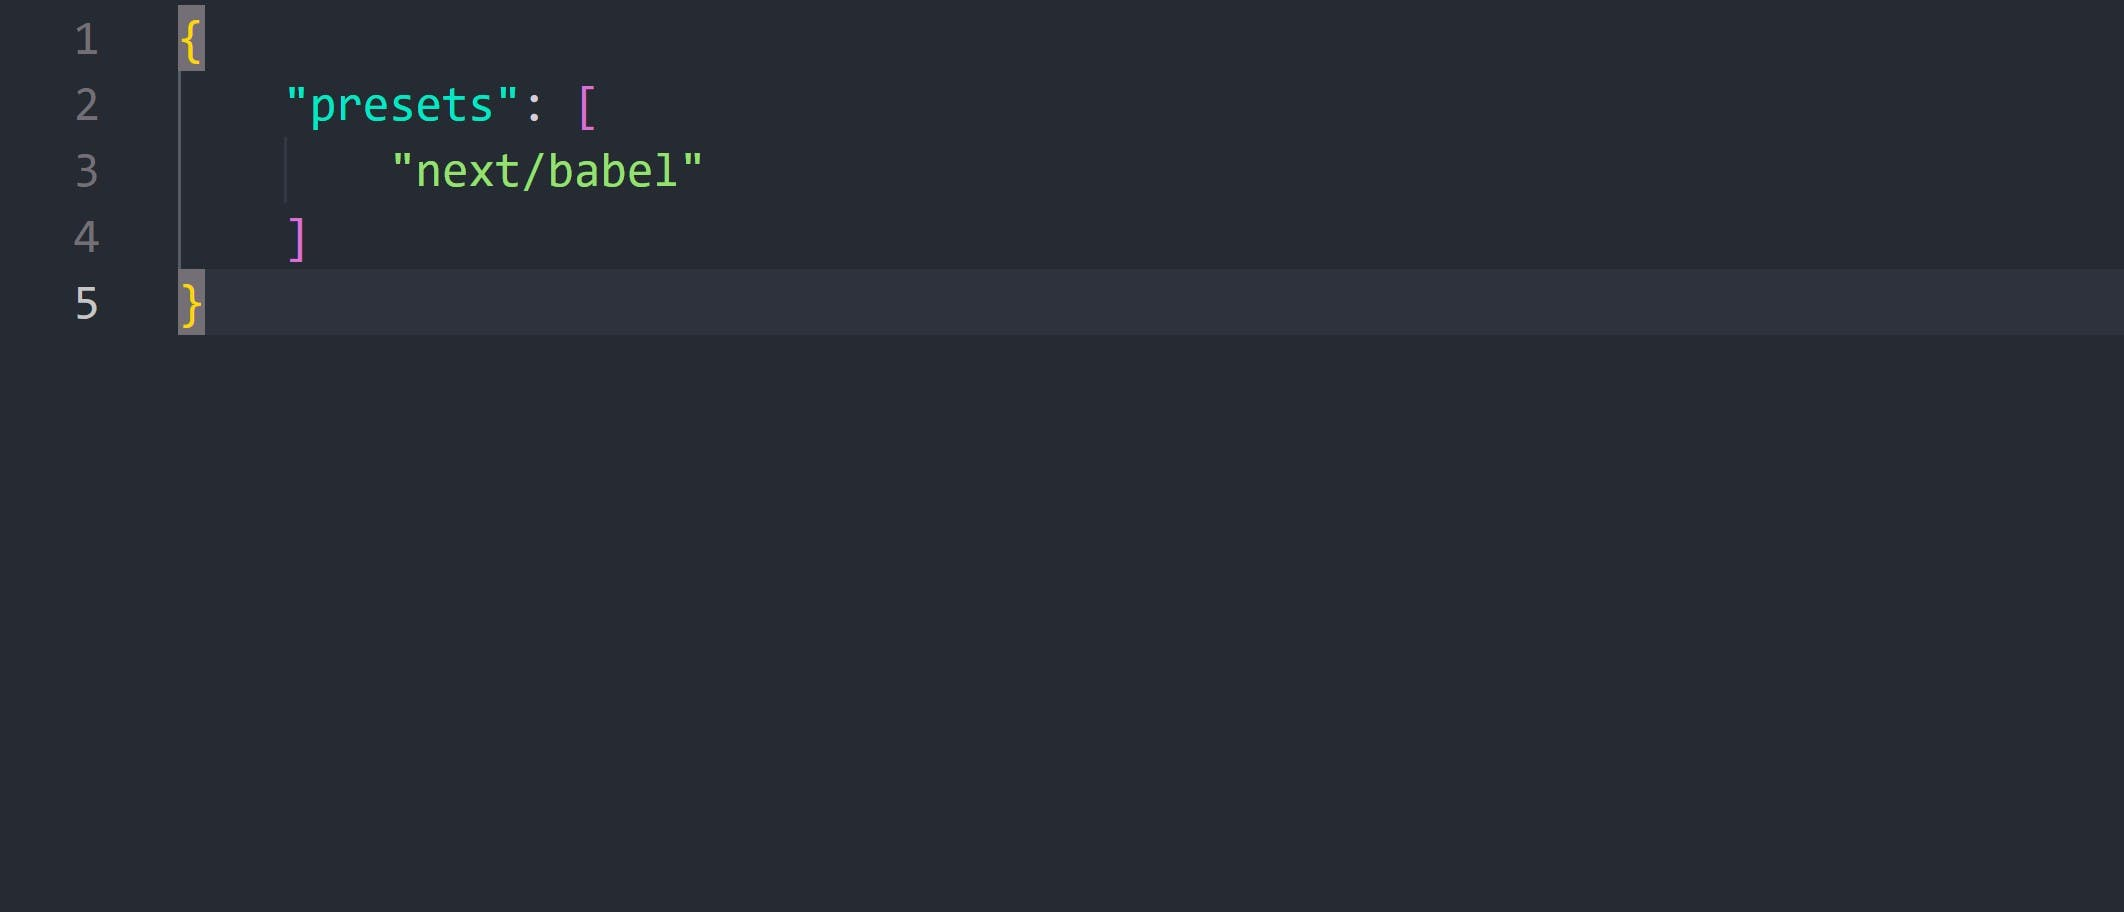 configure file for babel to work with next.js